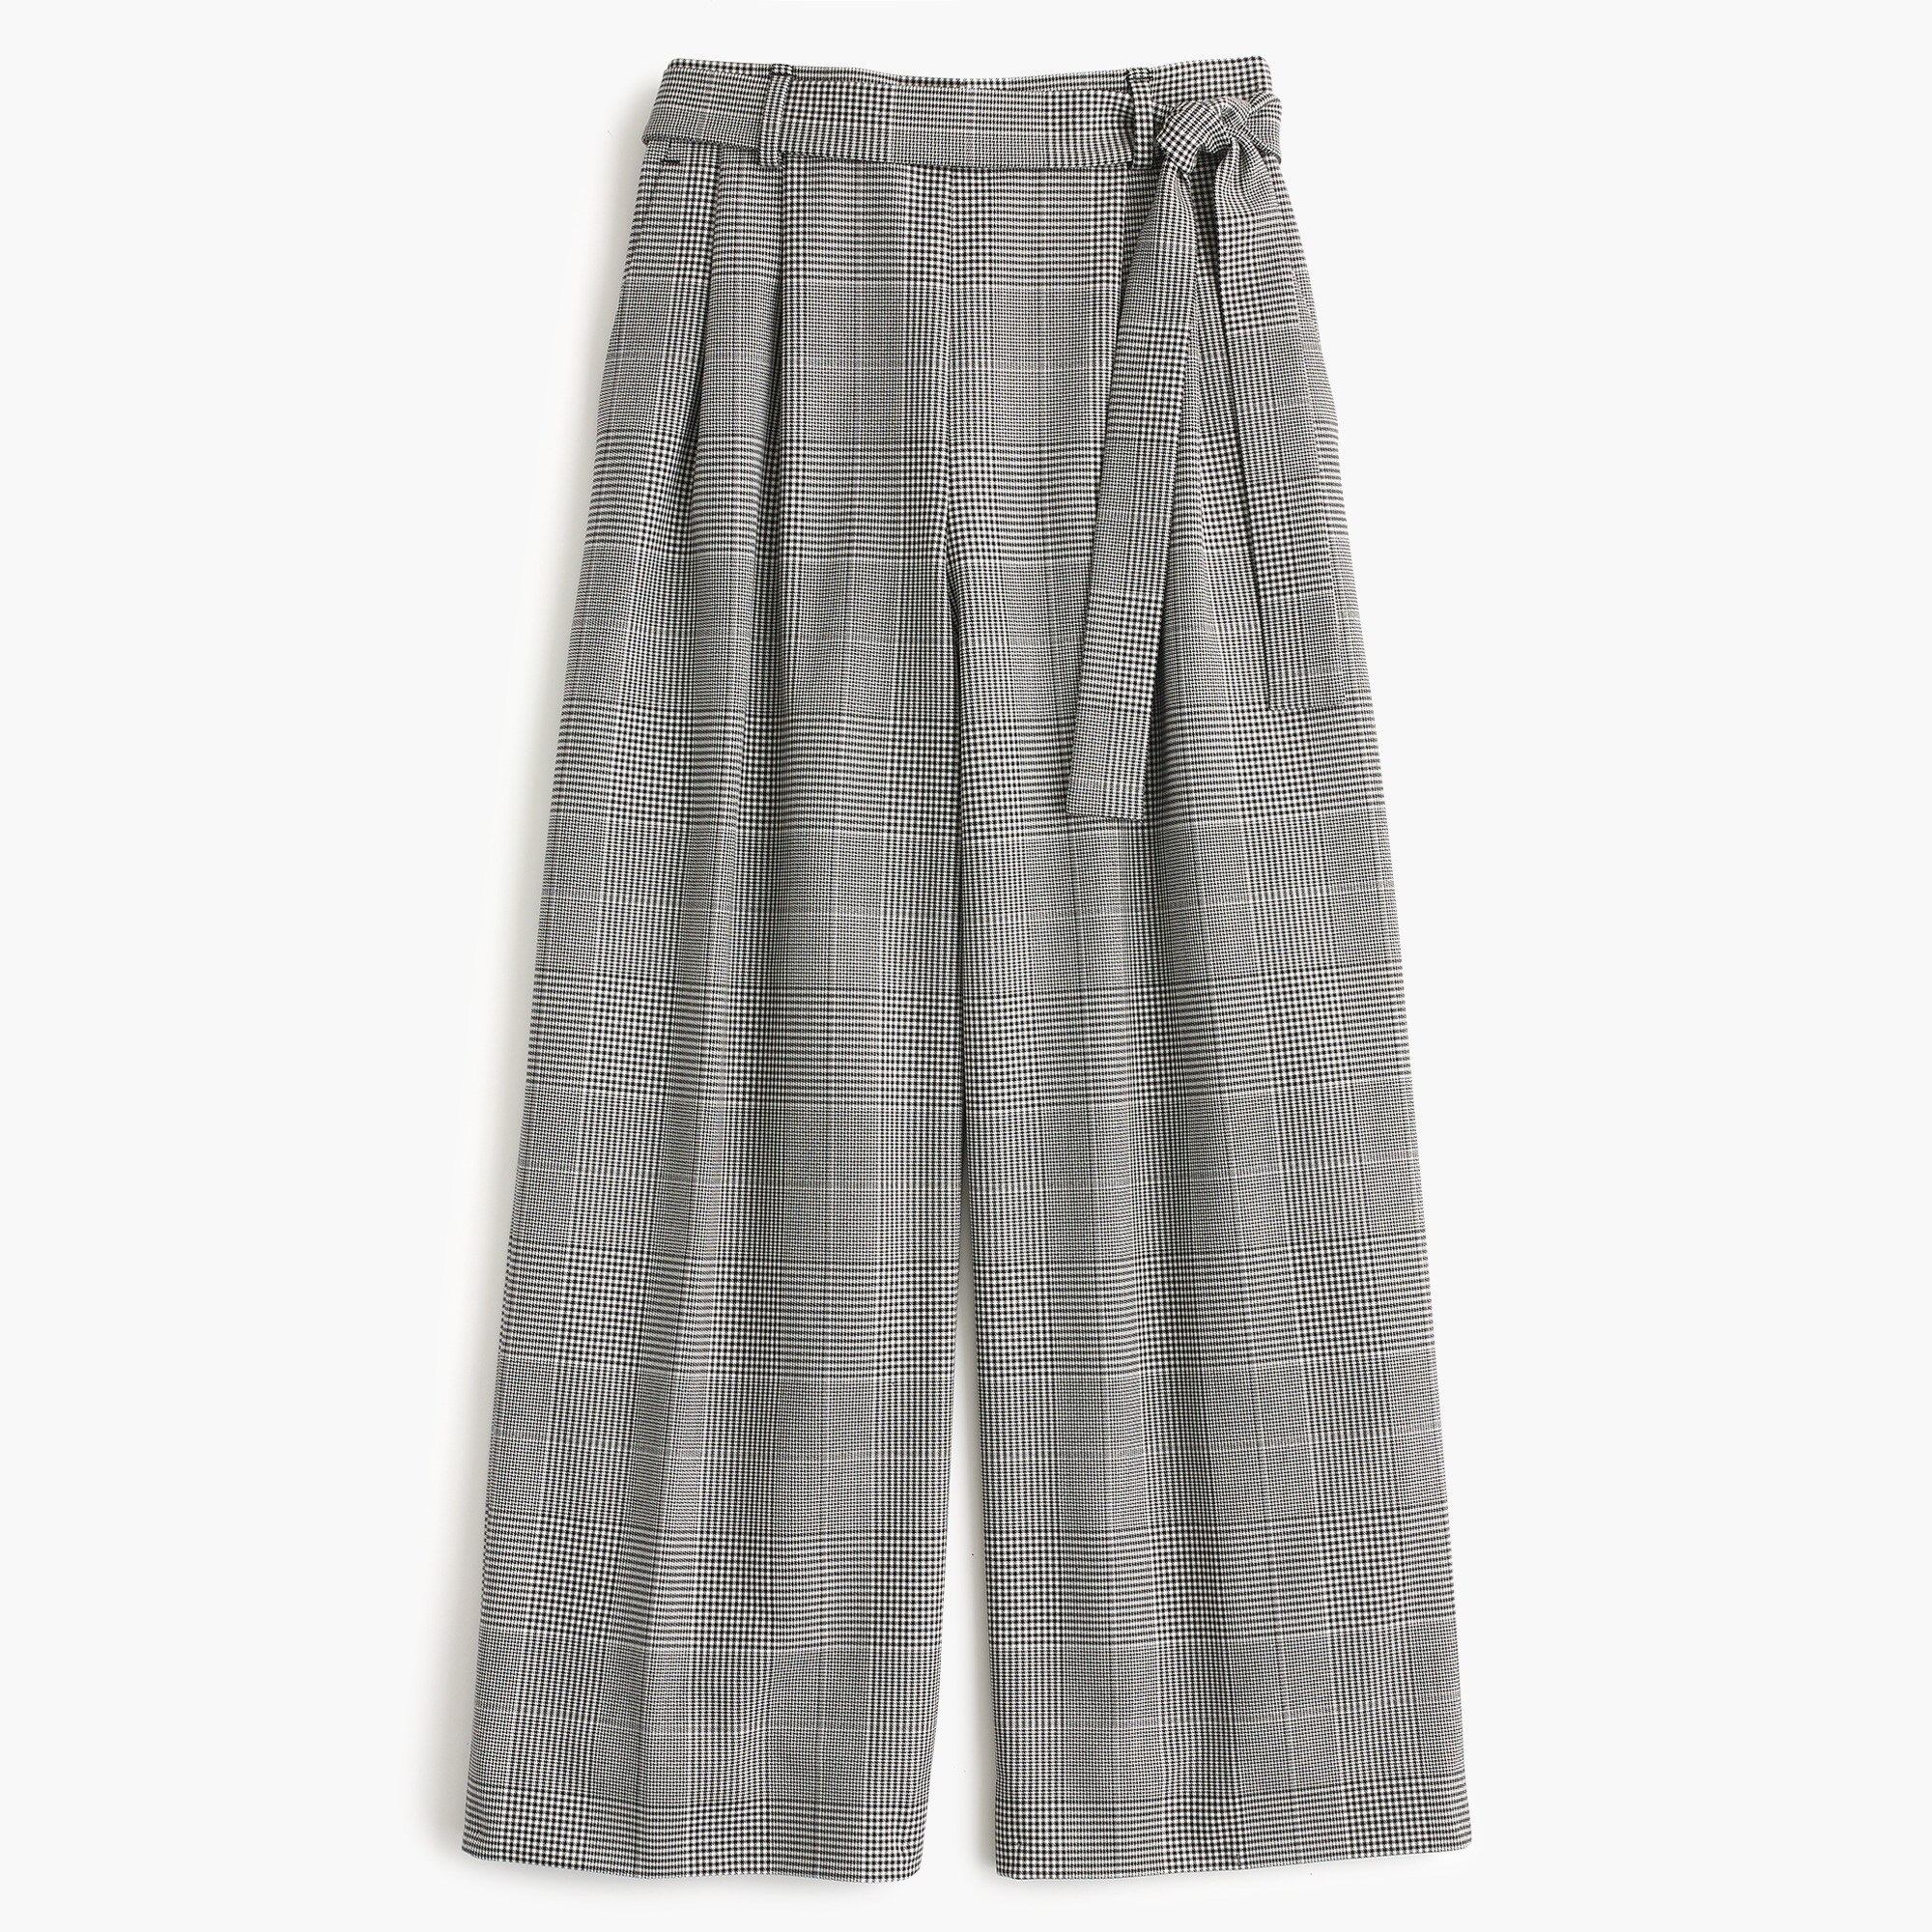 Pleated wide-leg pant in glen plaid